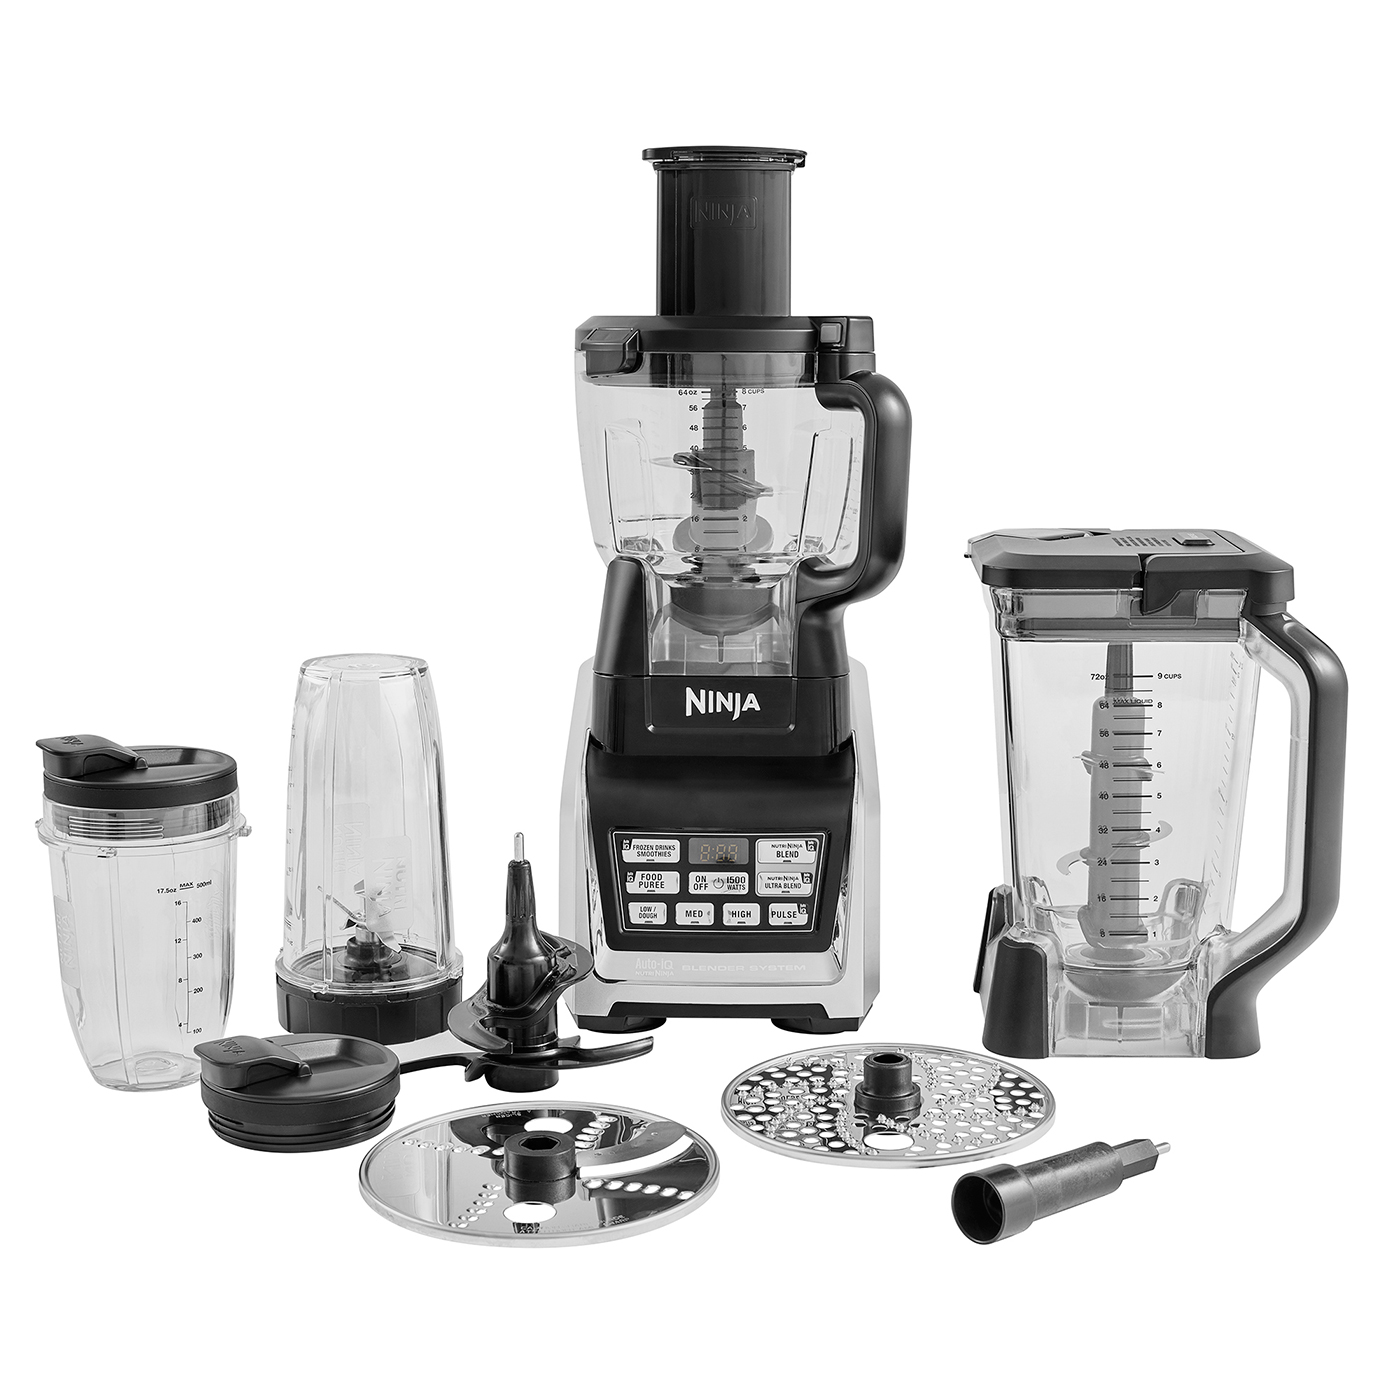 ninja complete food processor with auto-iq and nutri ninja 1500w